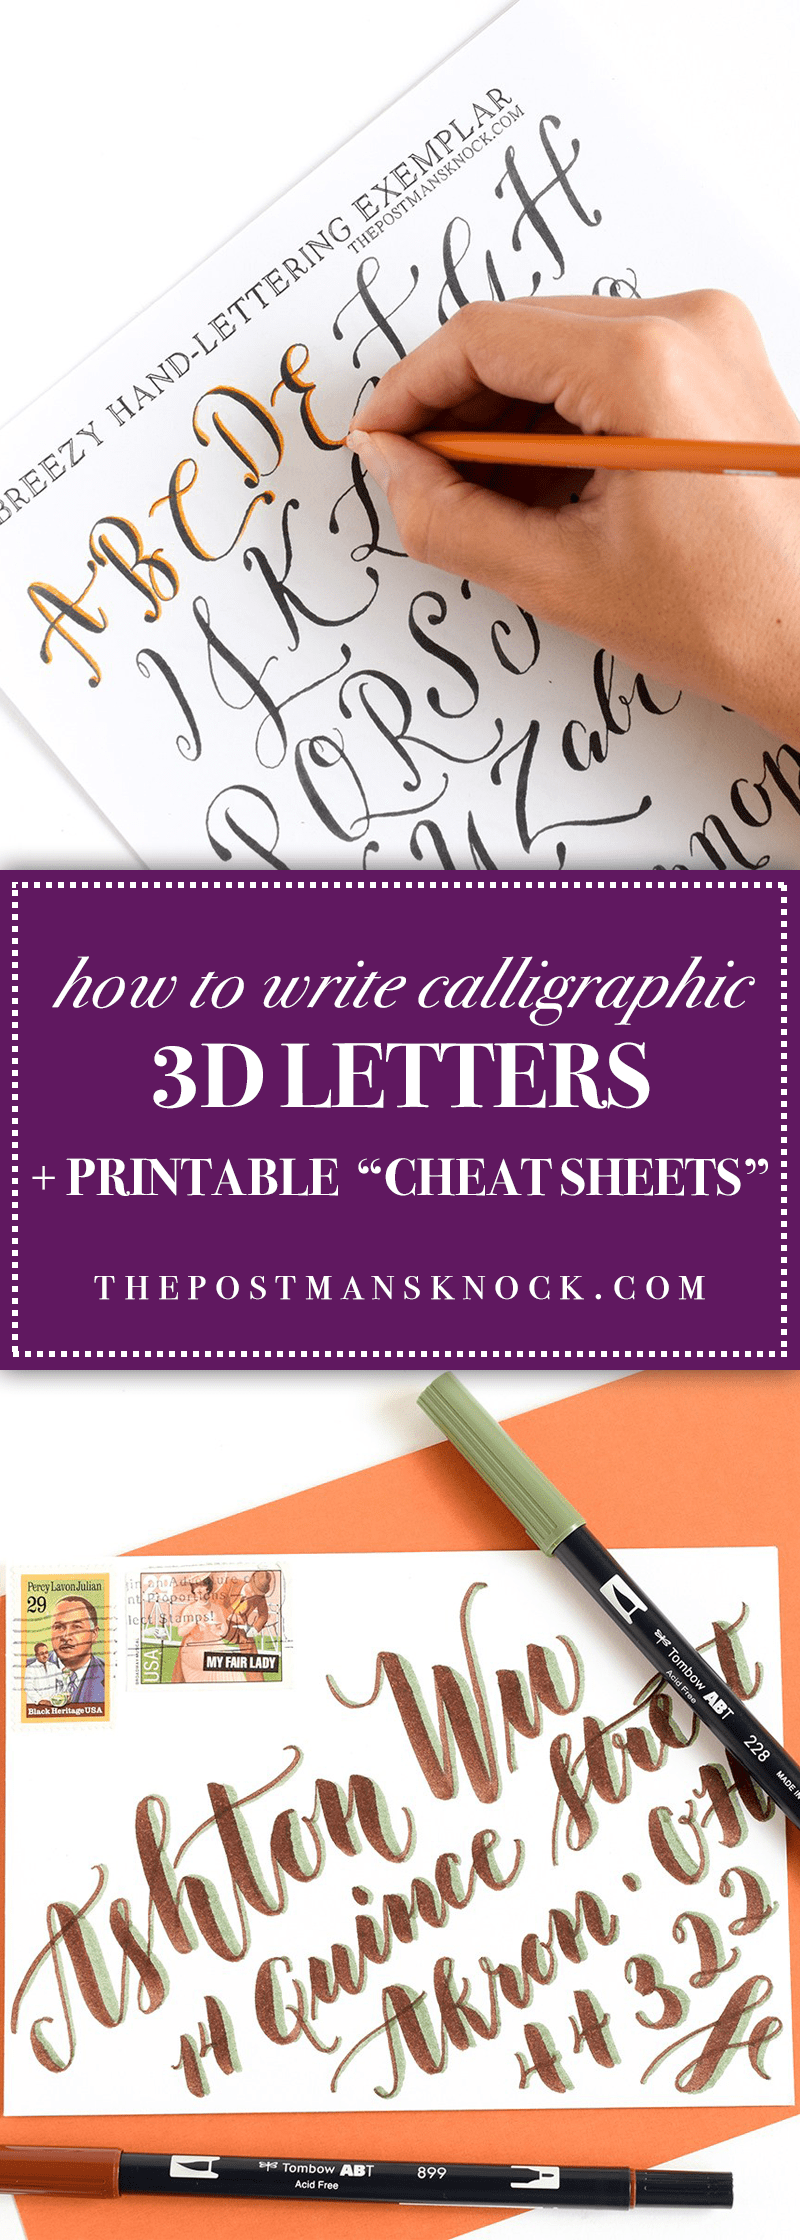 how to write calligraphic 3d letters printable